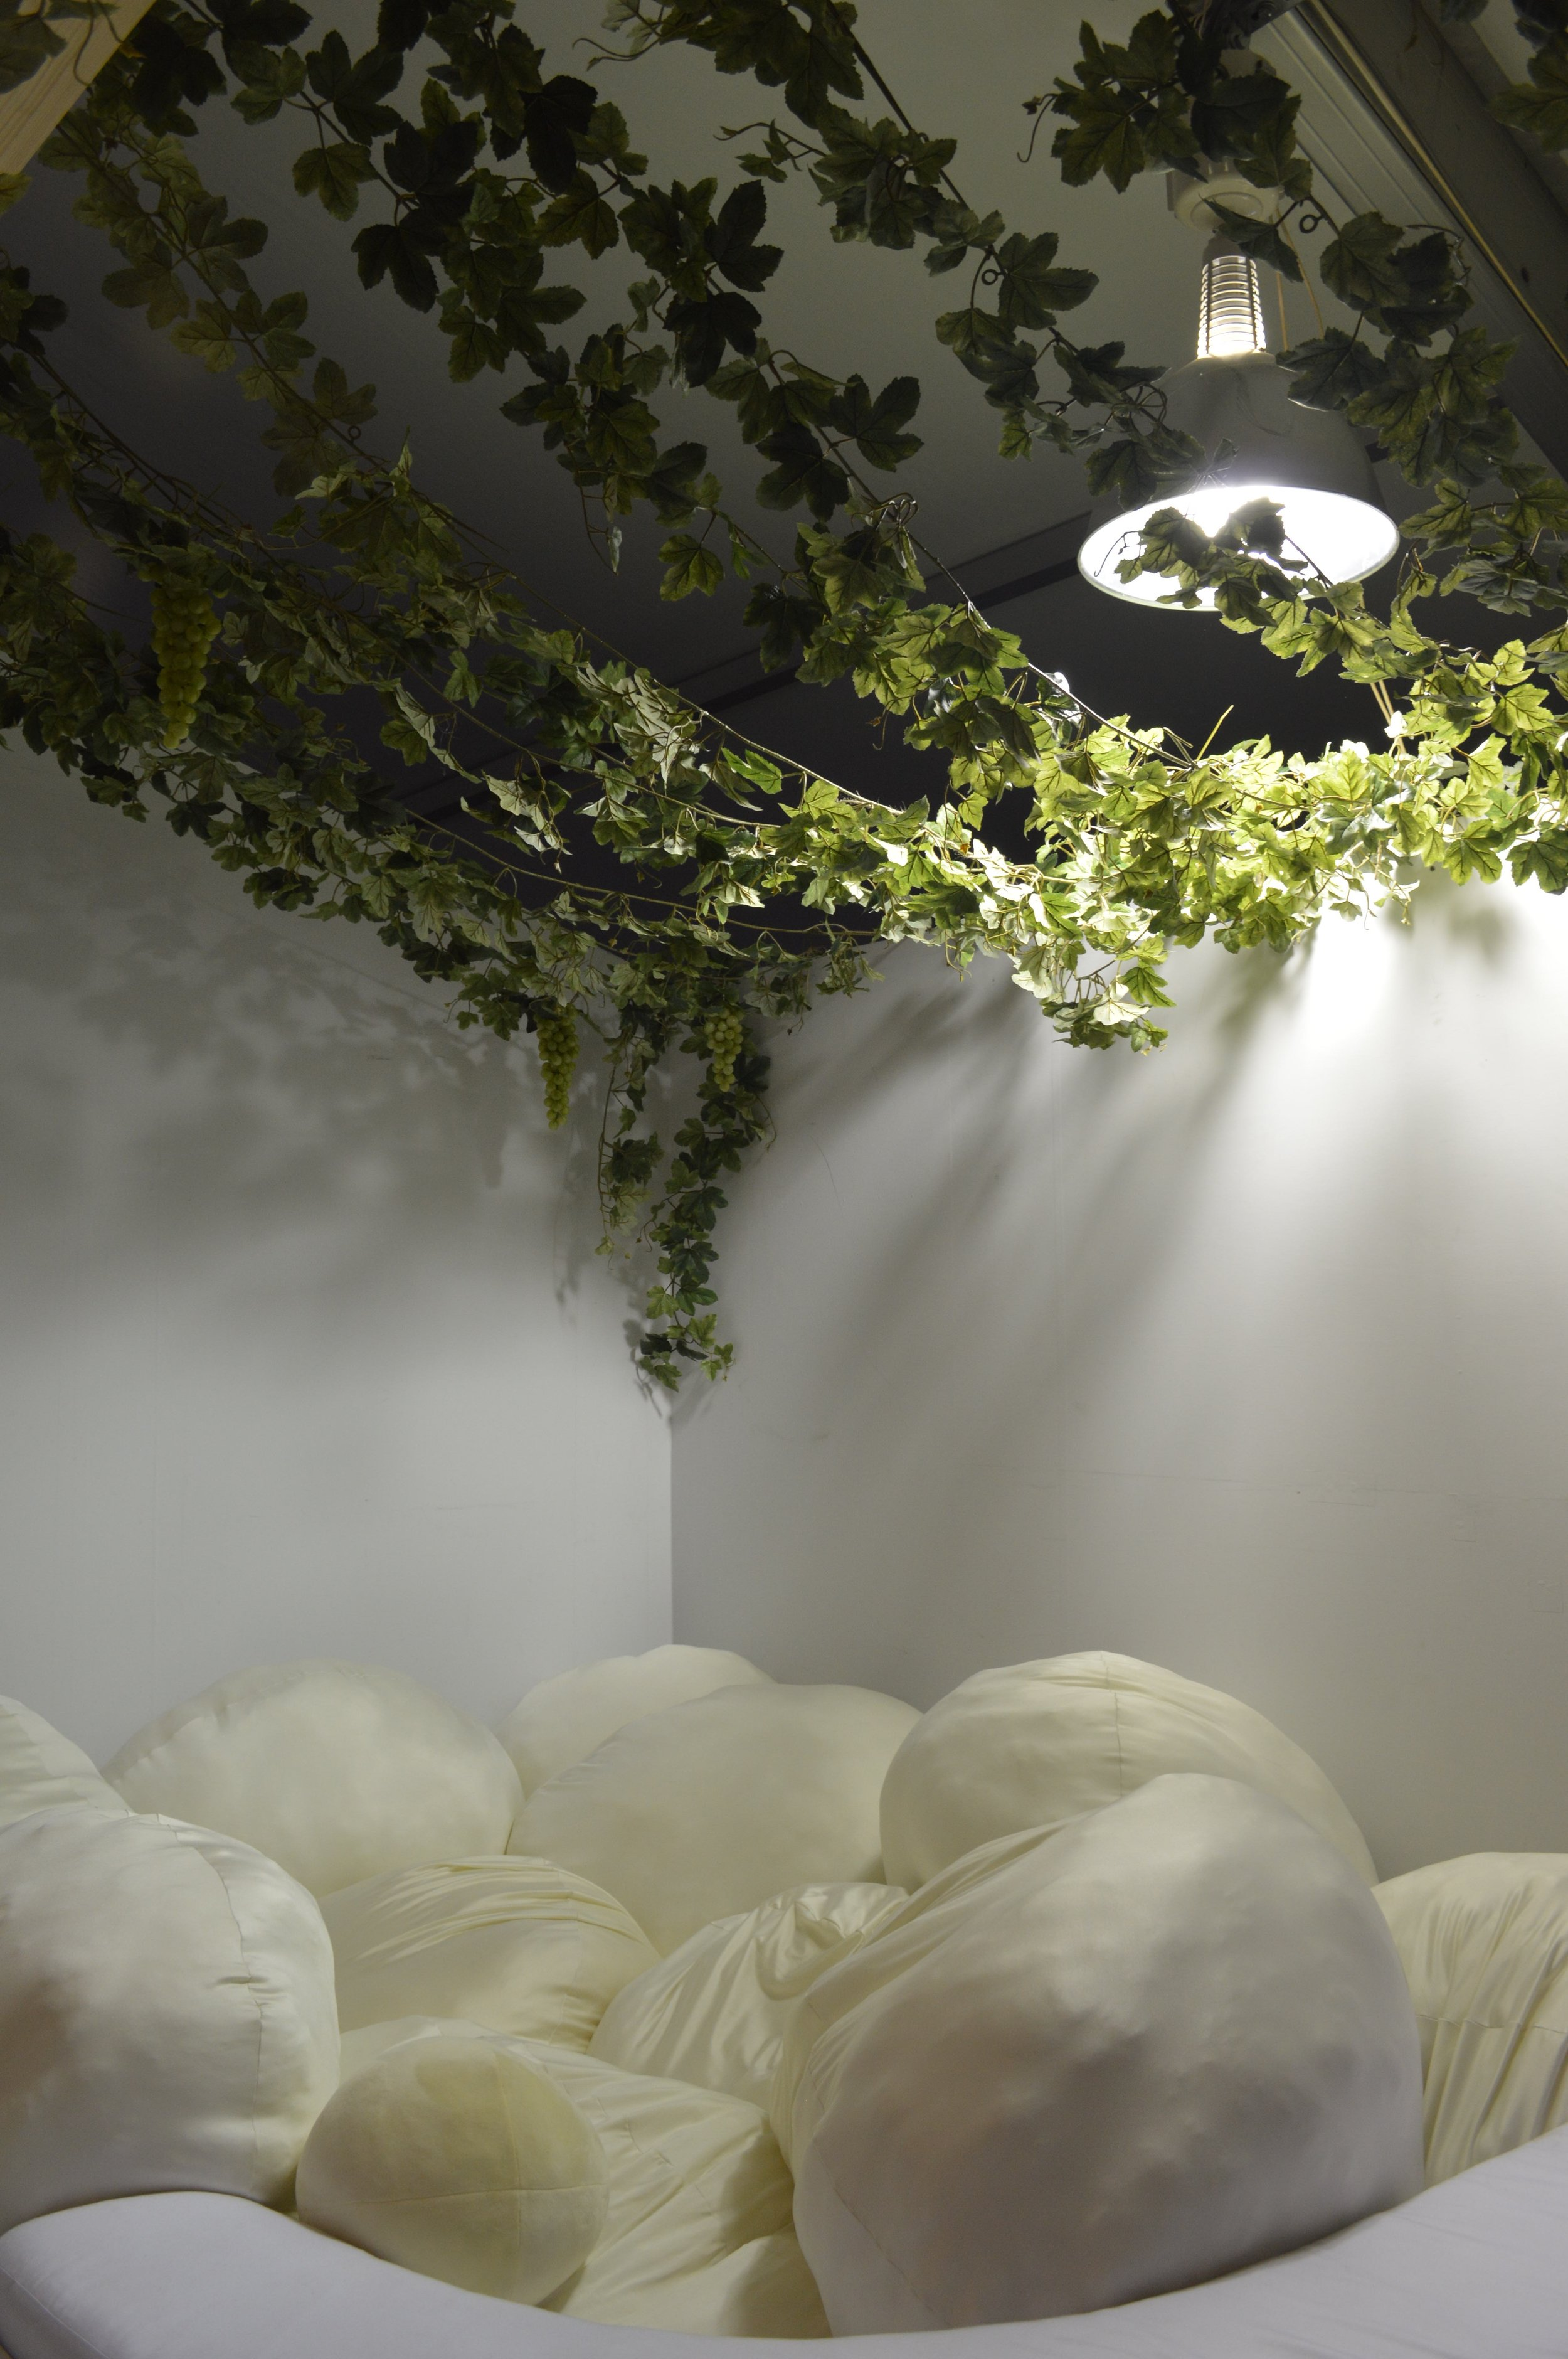 Howa-howa Komorebi Gym: This is a pillow pit with softly filtered sunlight. Sun shines through hanging vines into this soft cushion corner filled with egg-shaped squishy orbs, a place to lie, rest, and release the stresses of the city.